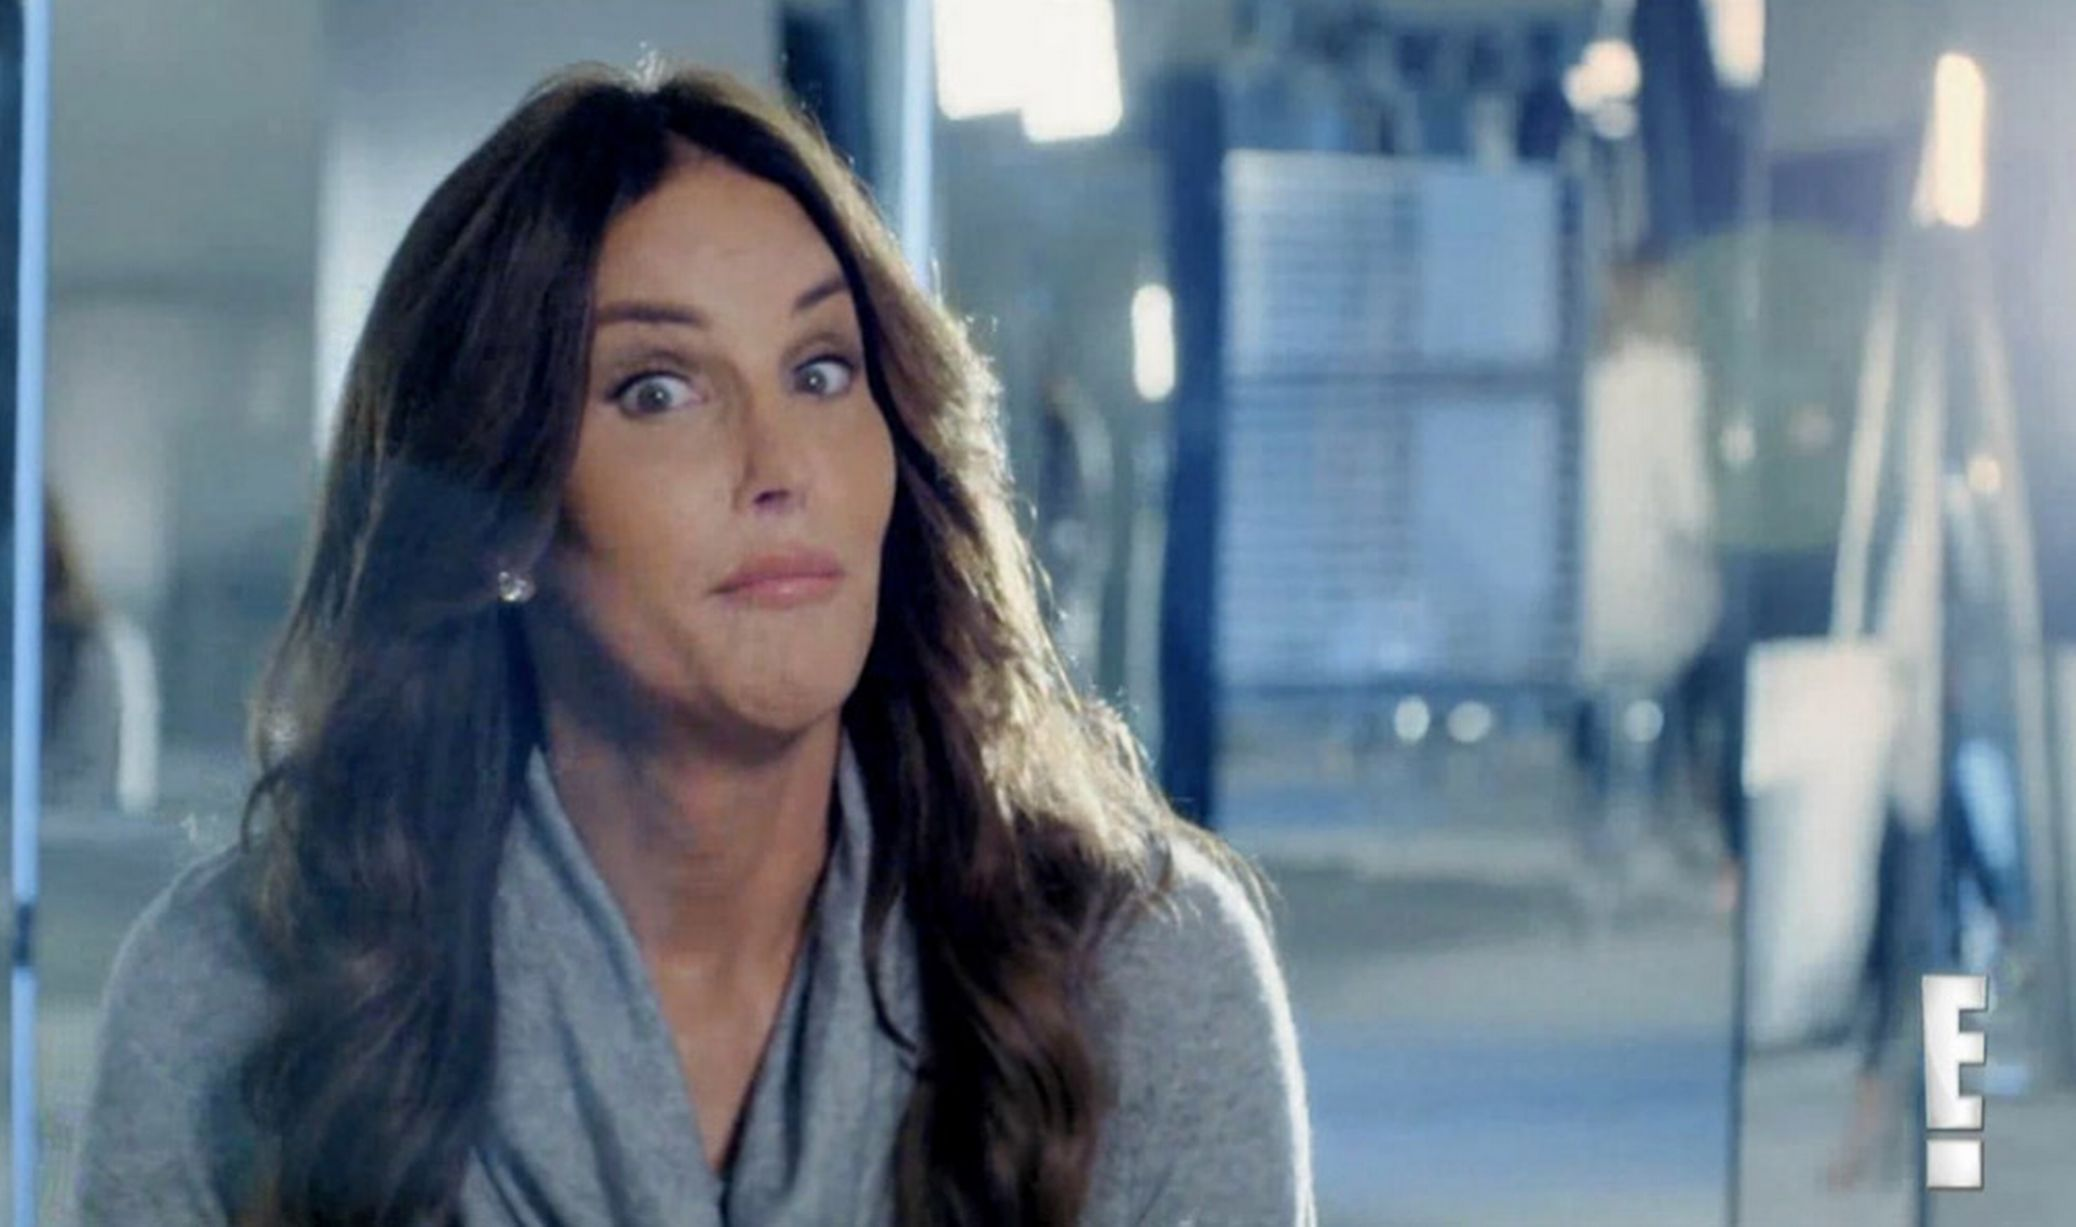 Caitlyn Jenner Calls Out Jimmy Kimmel For Jokes About Her Transition